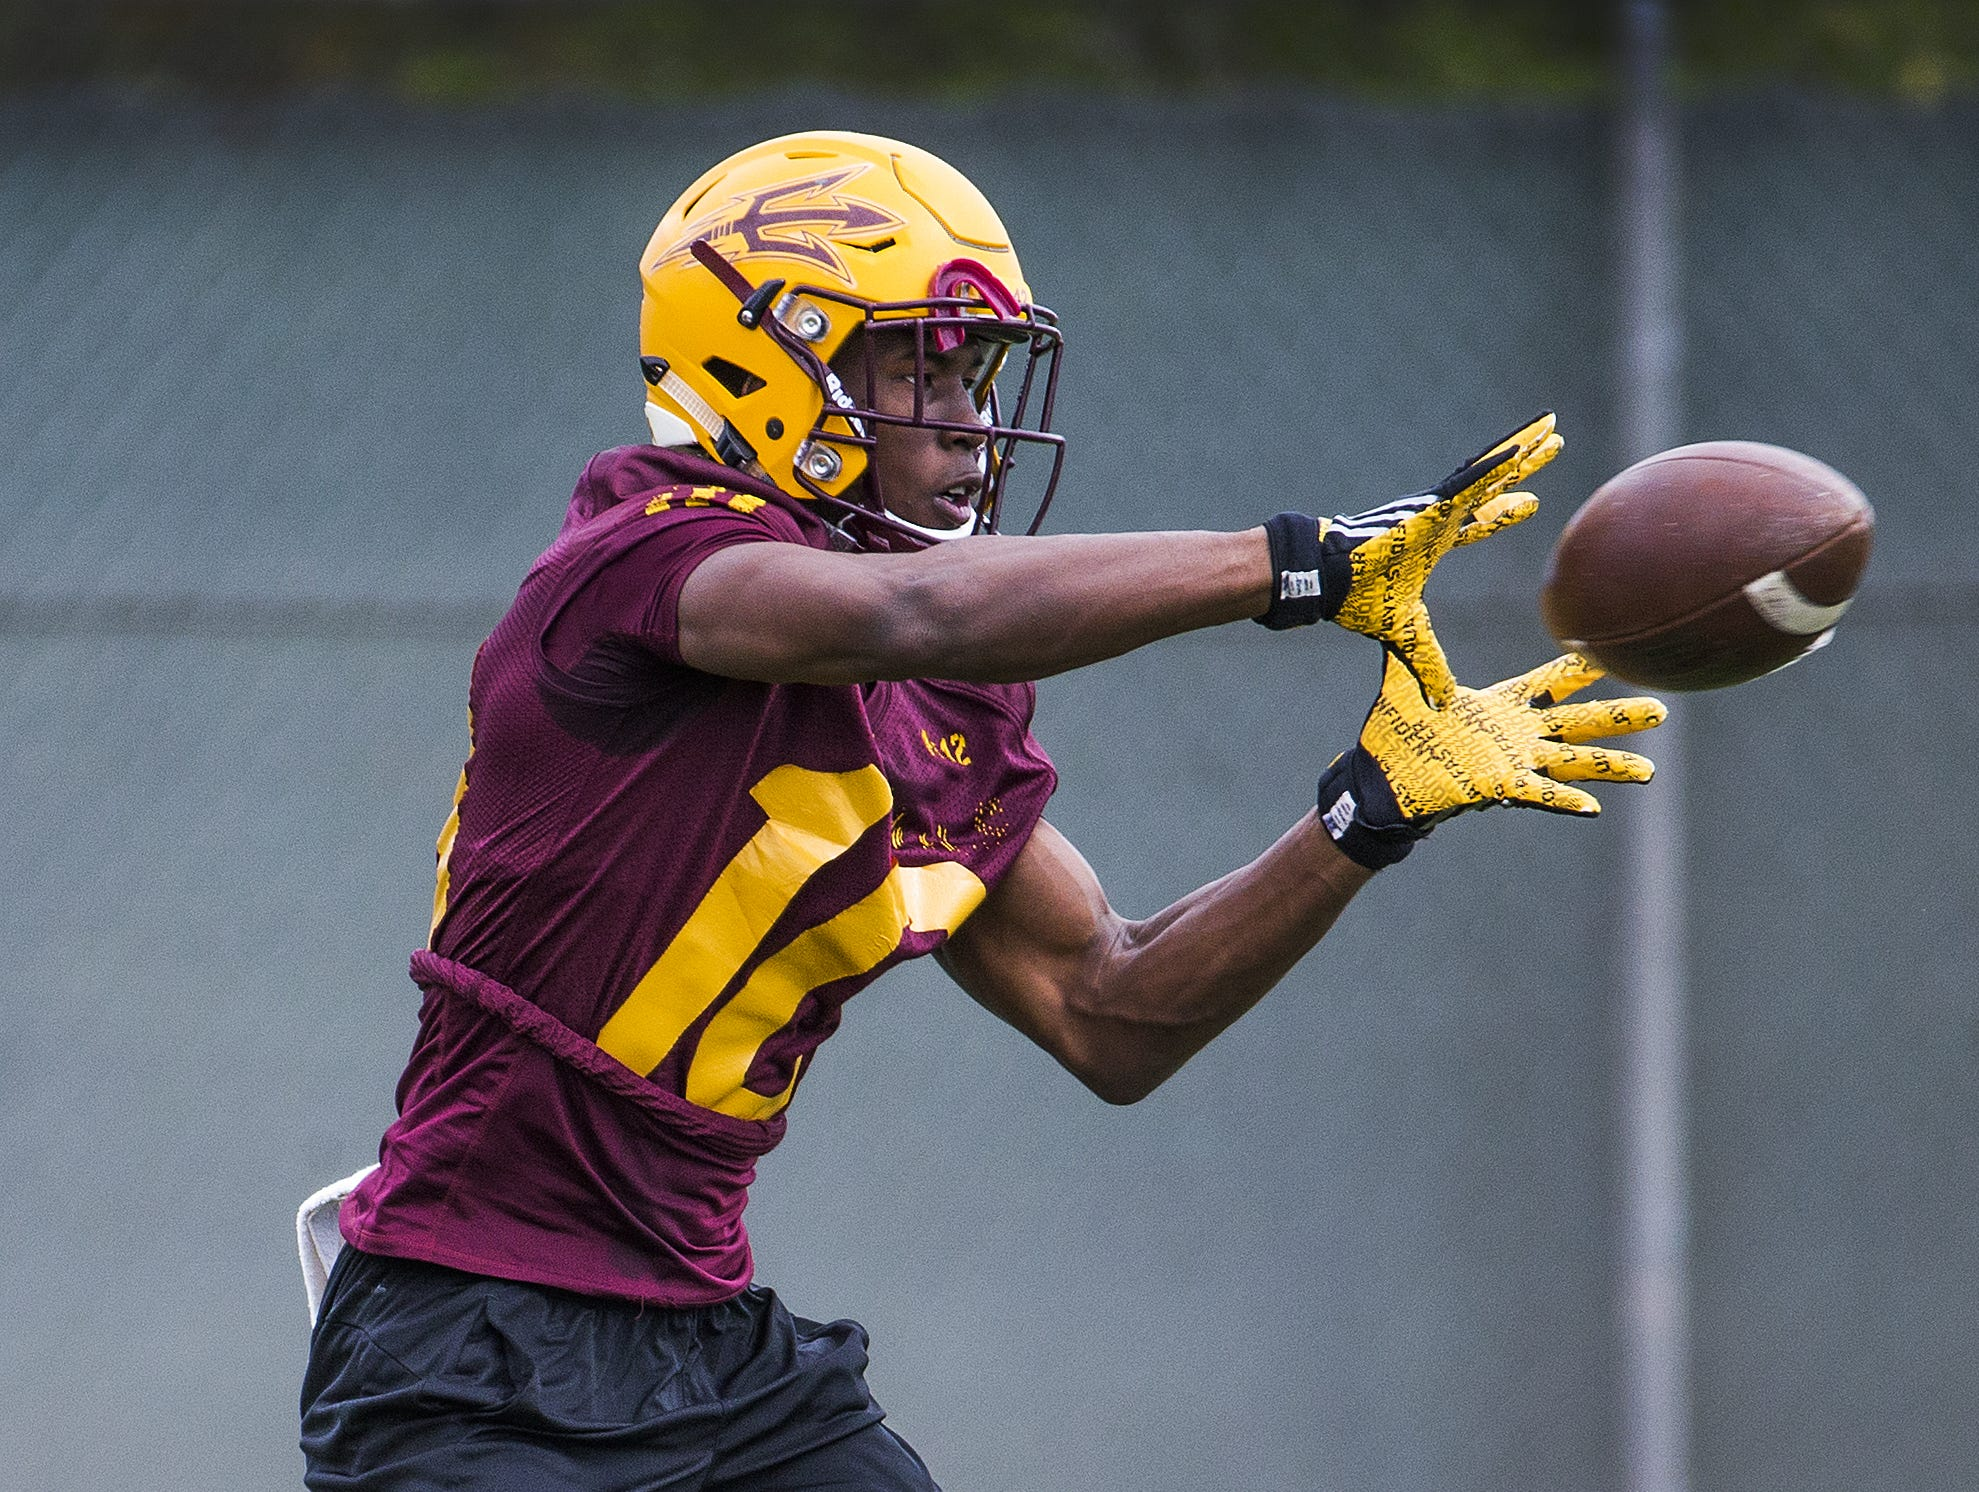 Wide receiver Kyle Williams catches a pass during practice with the Arizona State Sun Devils in Tempe, Thursday, April 12, 2018.